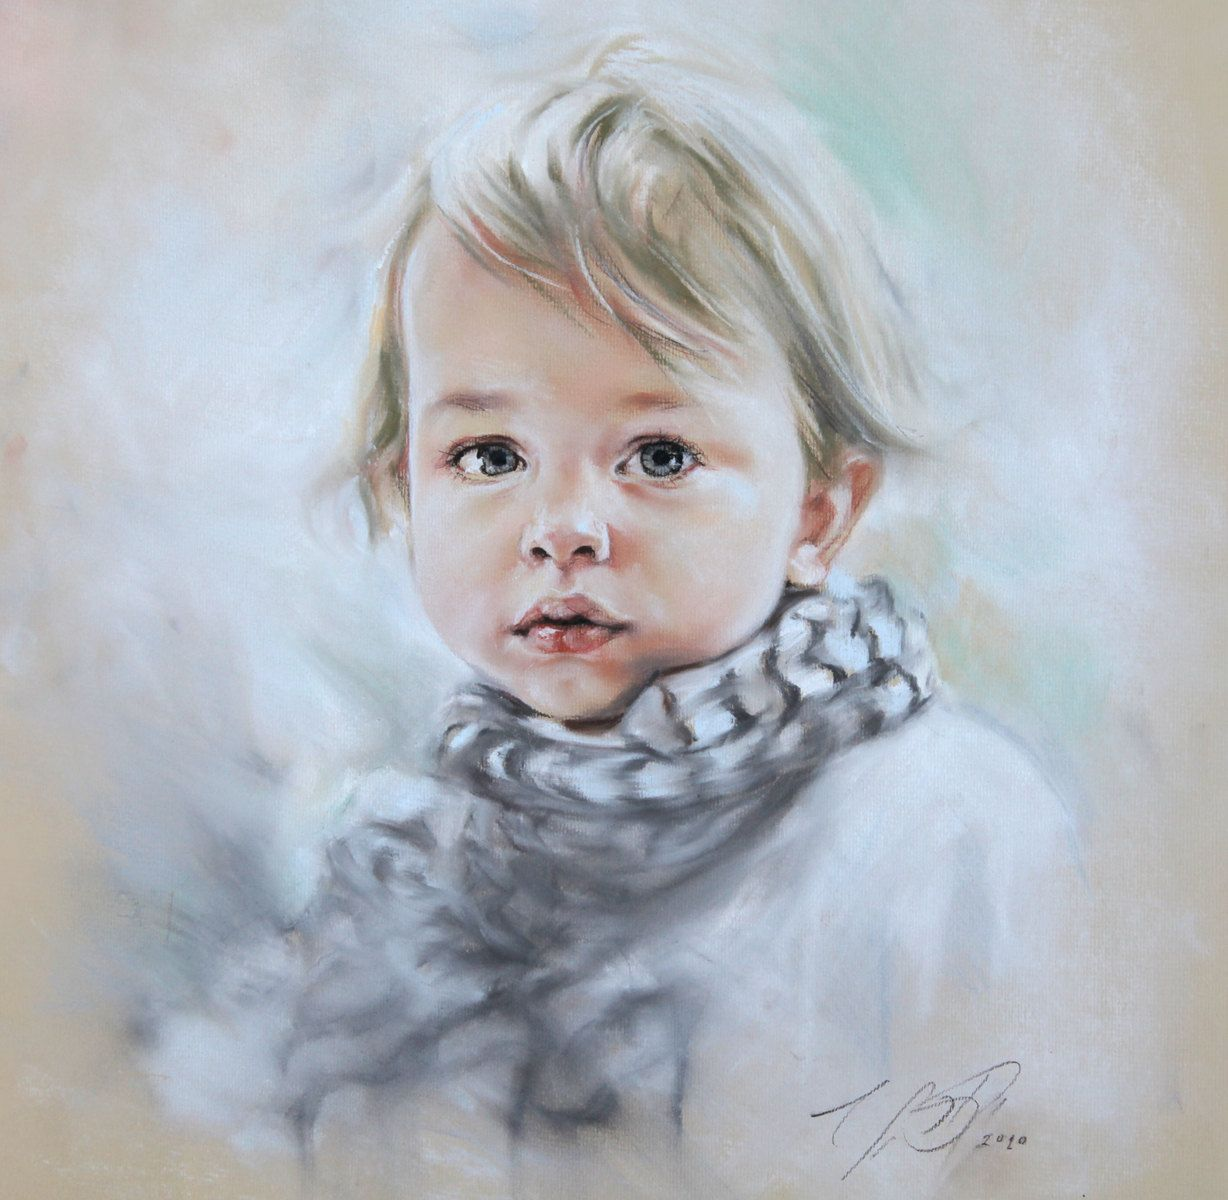 Custom Pastel Portrait Painting of Child from photography. $220.00, via Etsy.